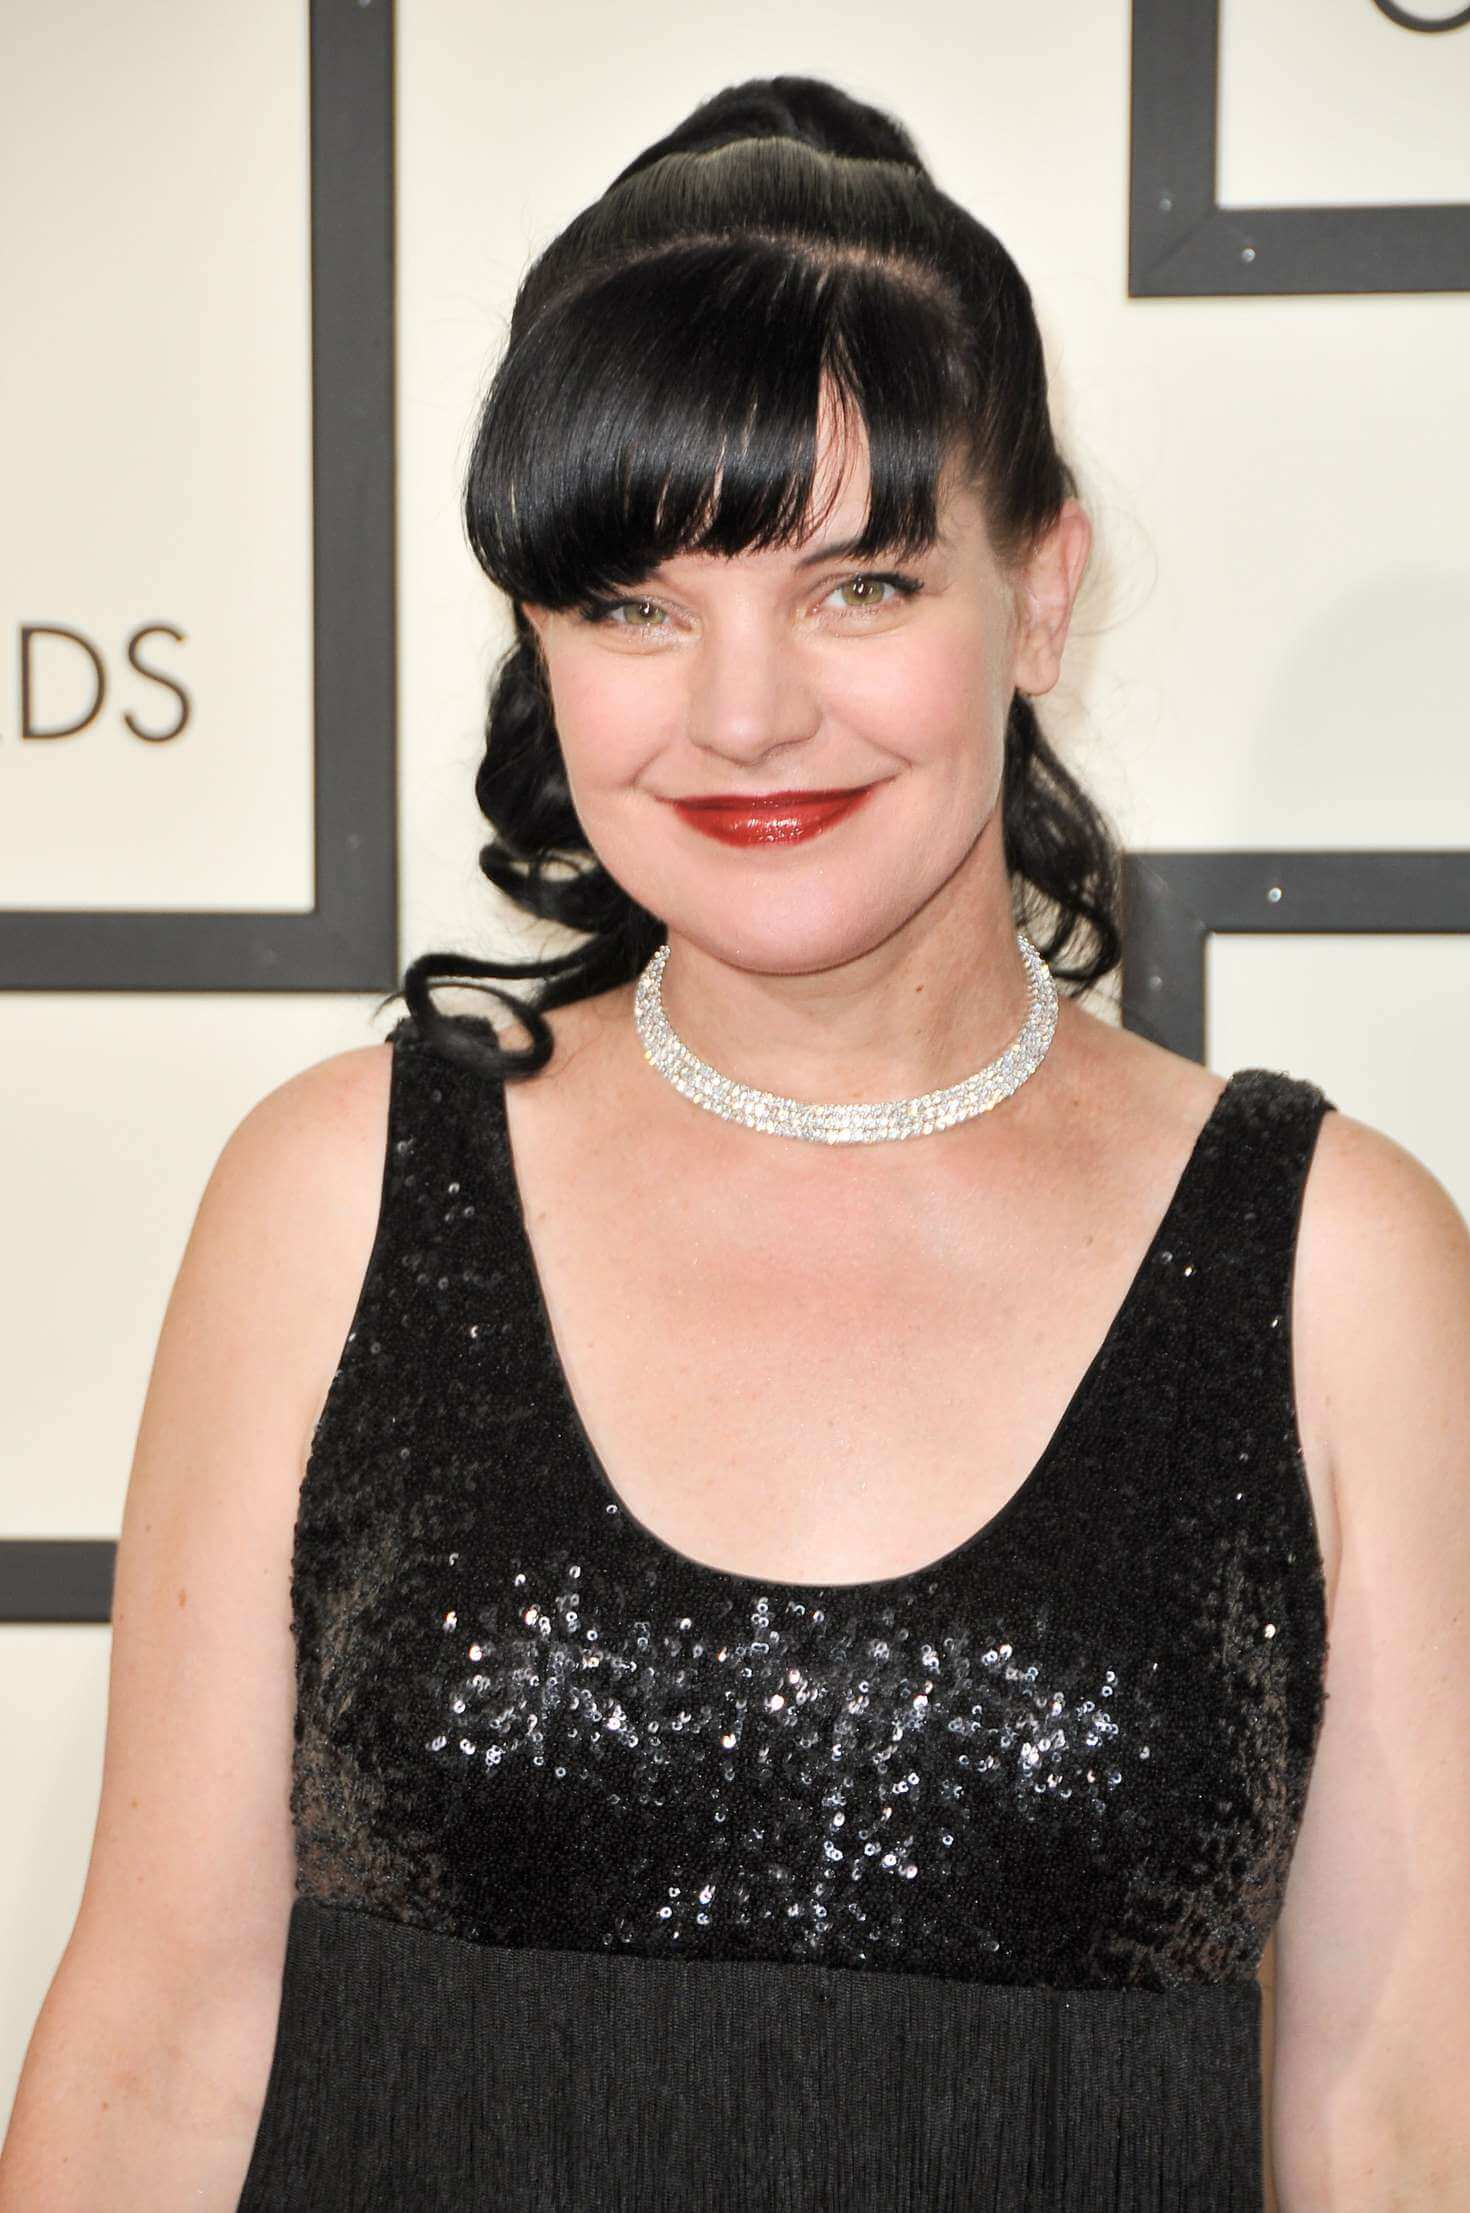 pauley perrette smile pics